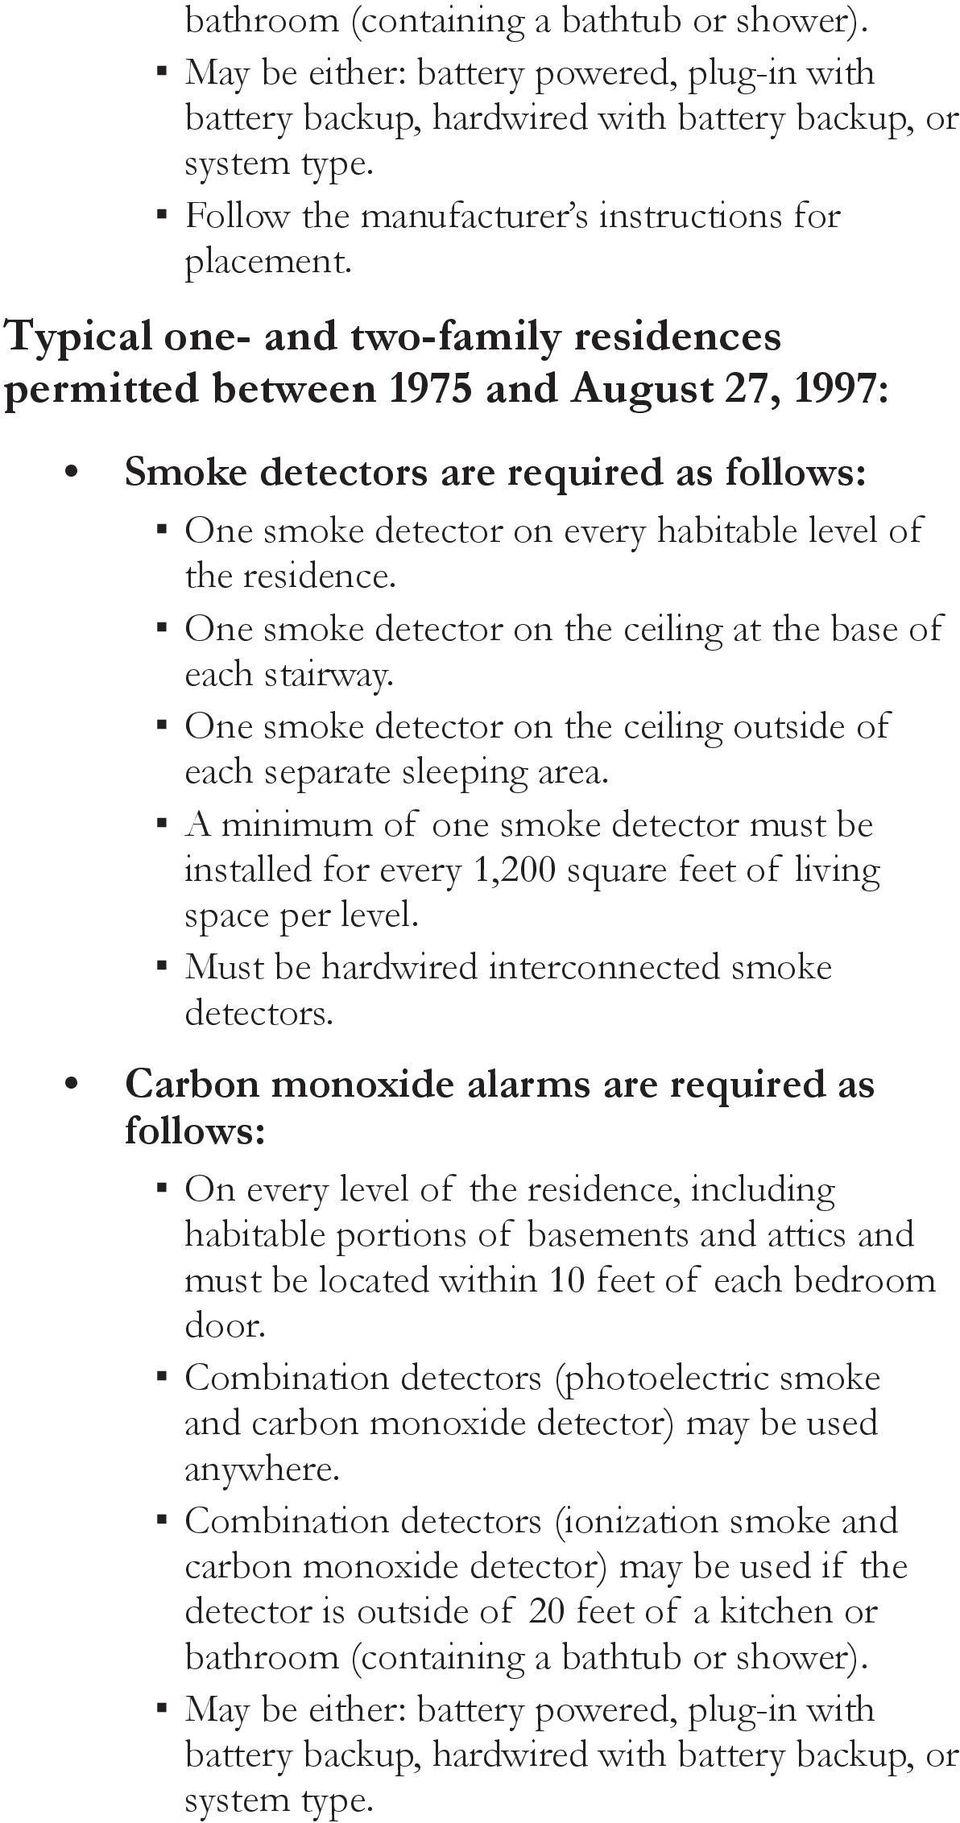 Typical one- and two-family residences permitted between 1975 and August 27, 1997: Smoke detectors are required as follows: One smoke detector on every habitable level of the residence.